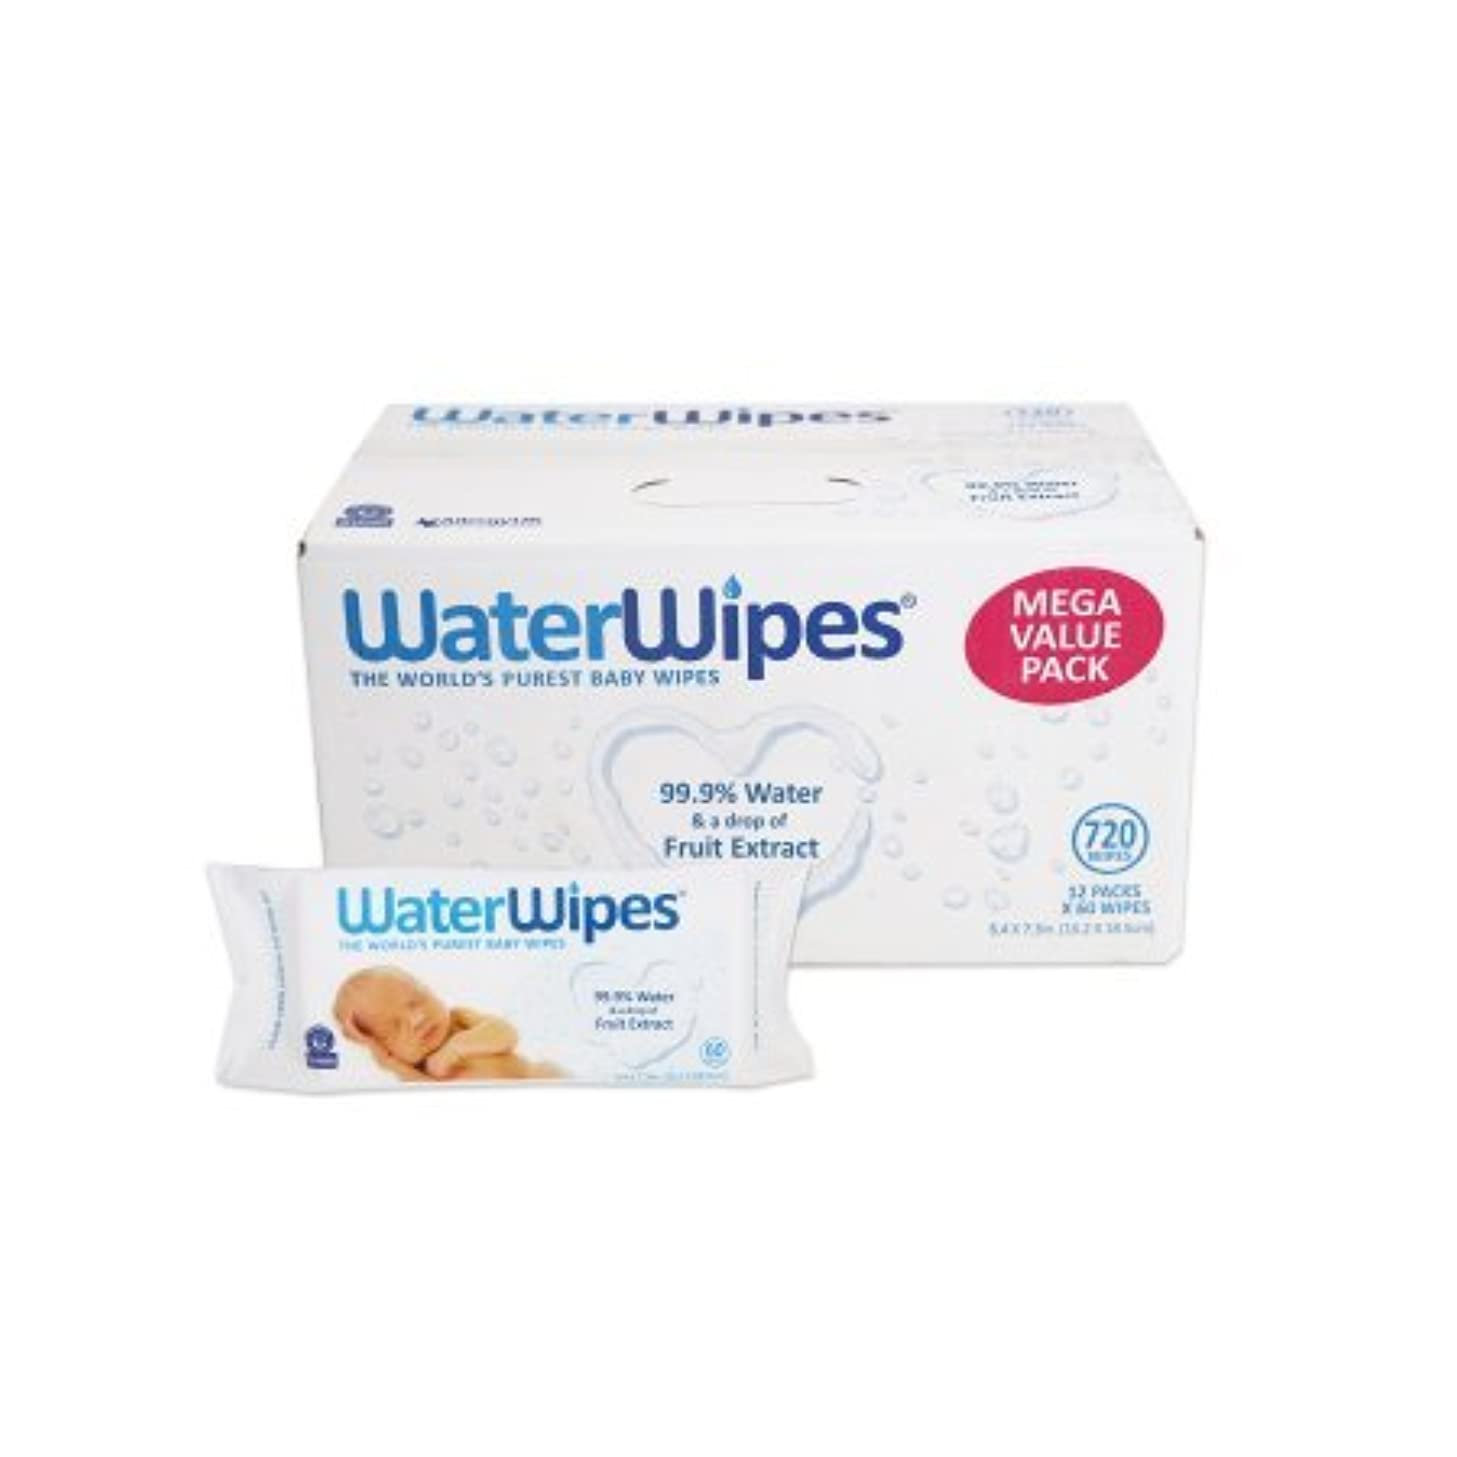 WaterWipes値Baby Wipes .3Pack (720 count)